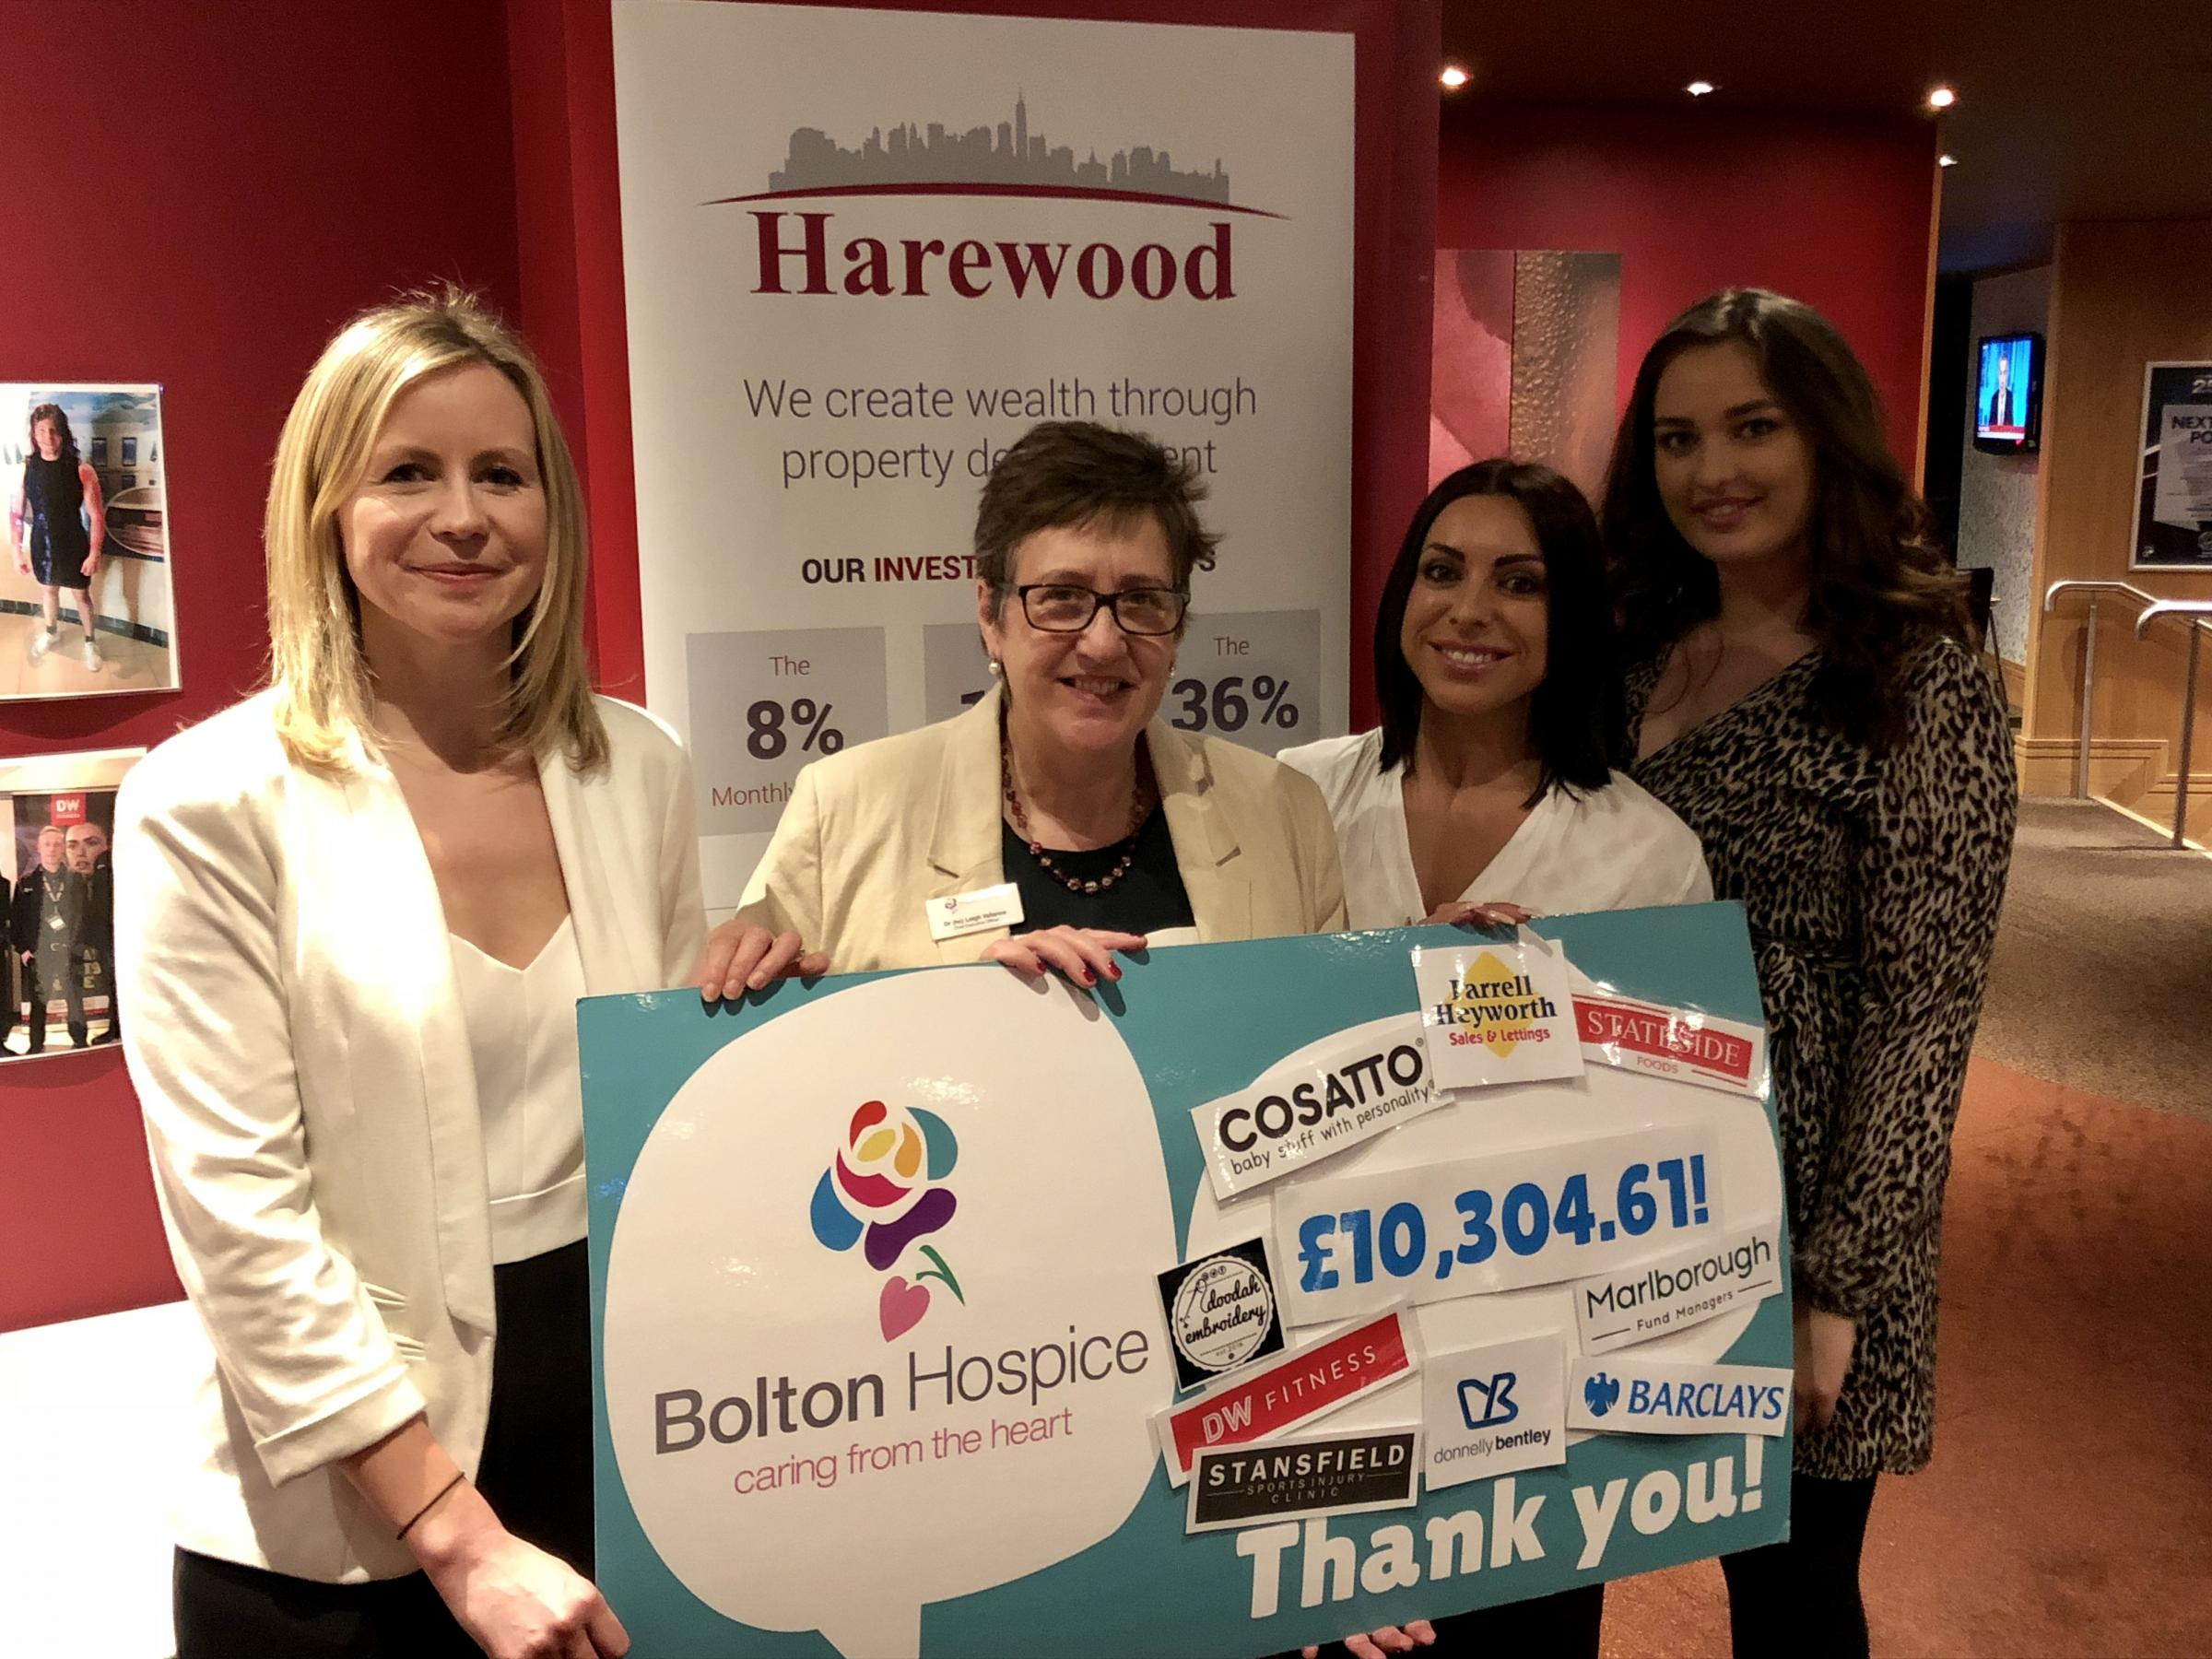 More than £10,300 was raised for Bolton Hospice through its £50 Challenge